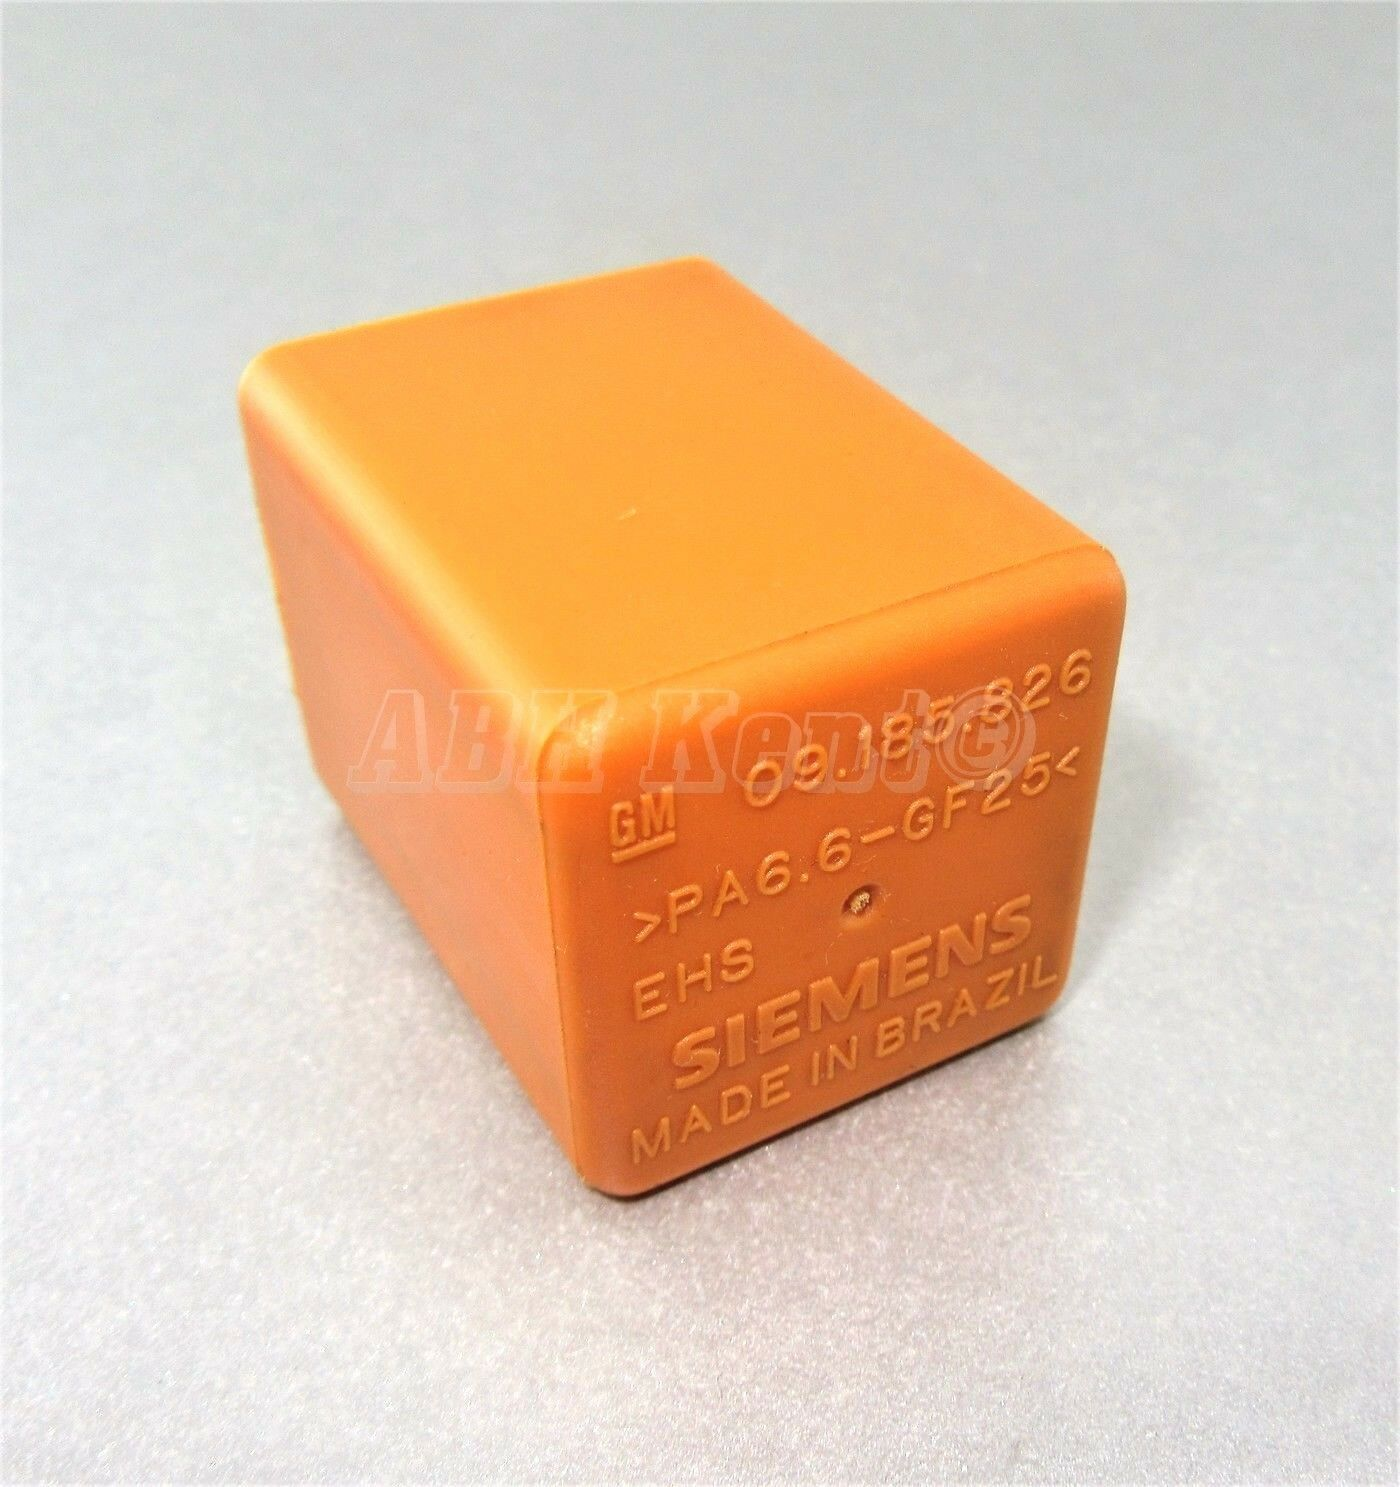 310 Vauxhall Opel 5 Pin Orange Relay Speed Signal Gm 09185826 Lucas 1 Of 5only 0 Available